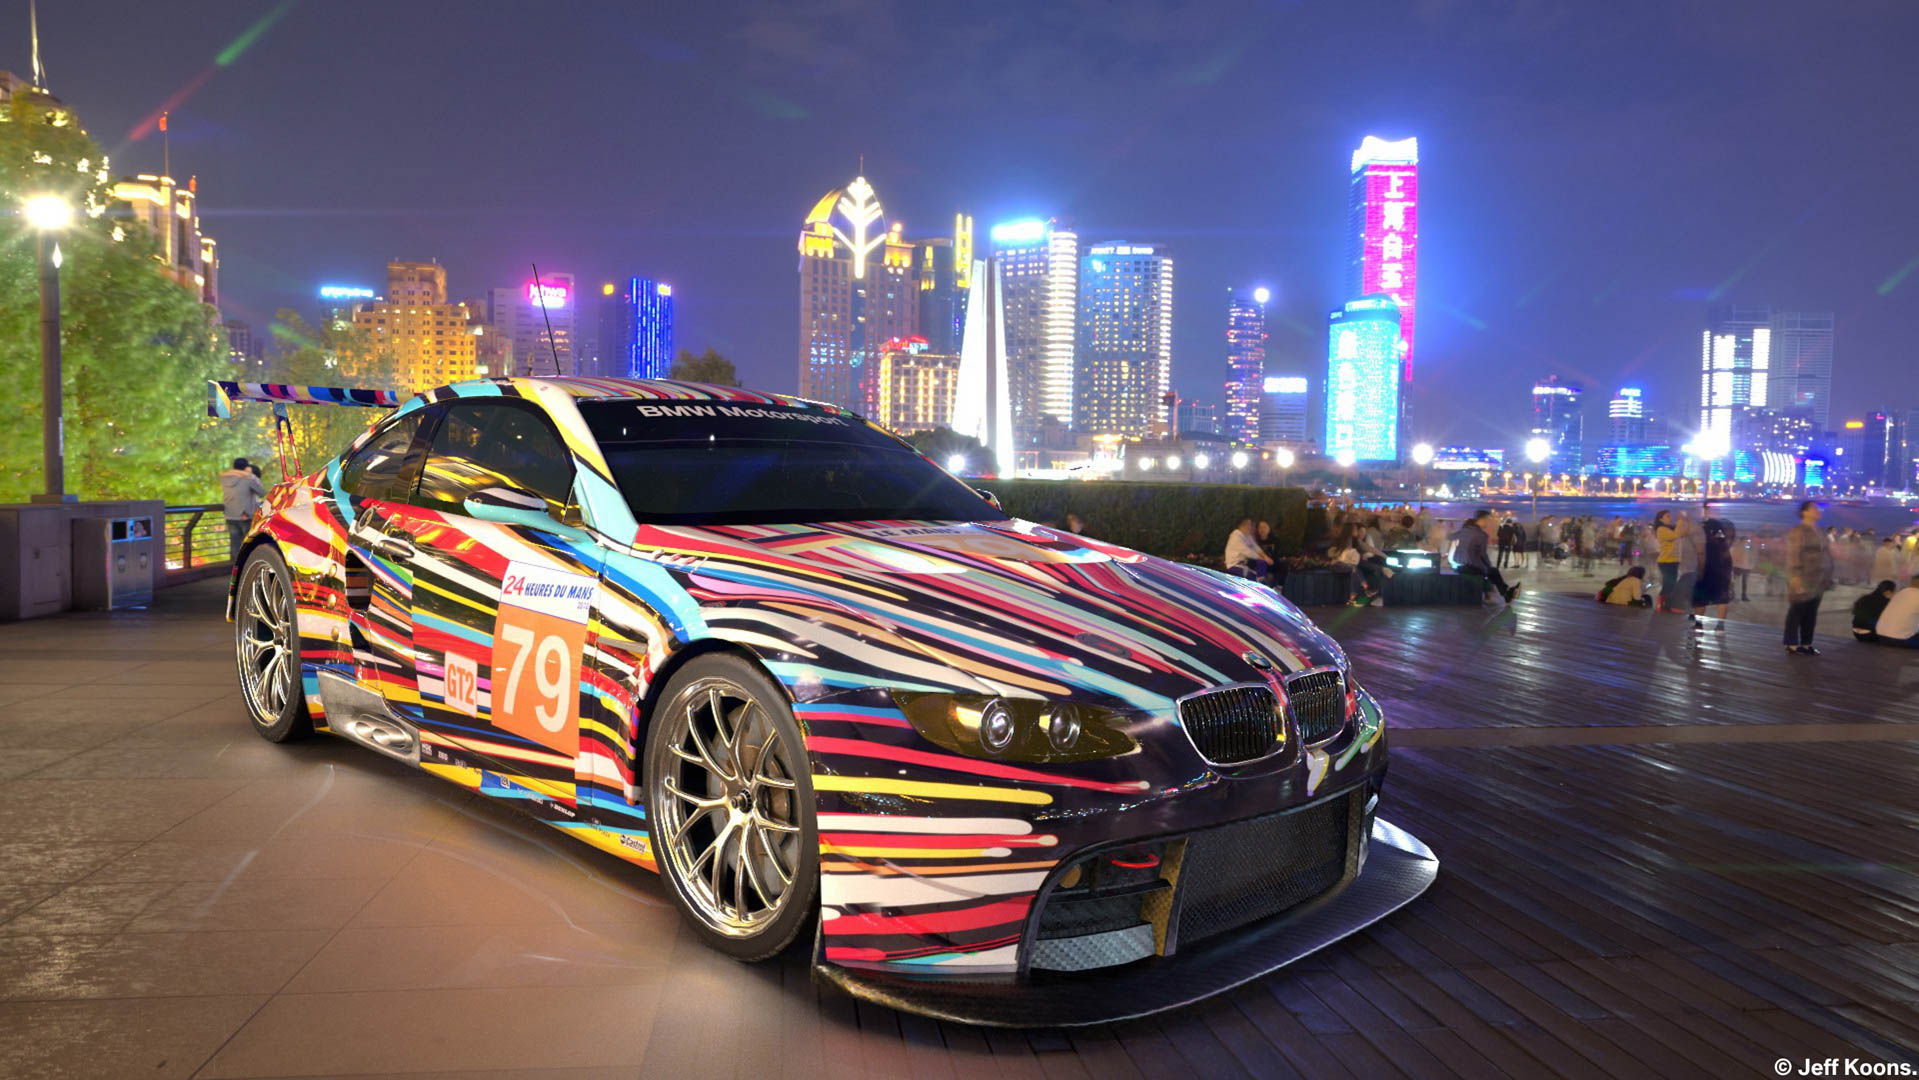 You Can Now See BMW Art Cars in the Real World with Augmented Reality